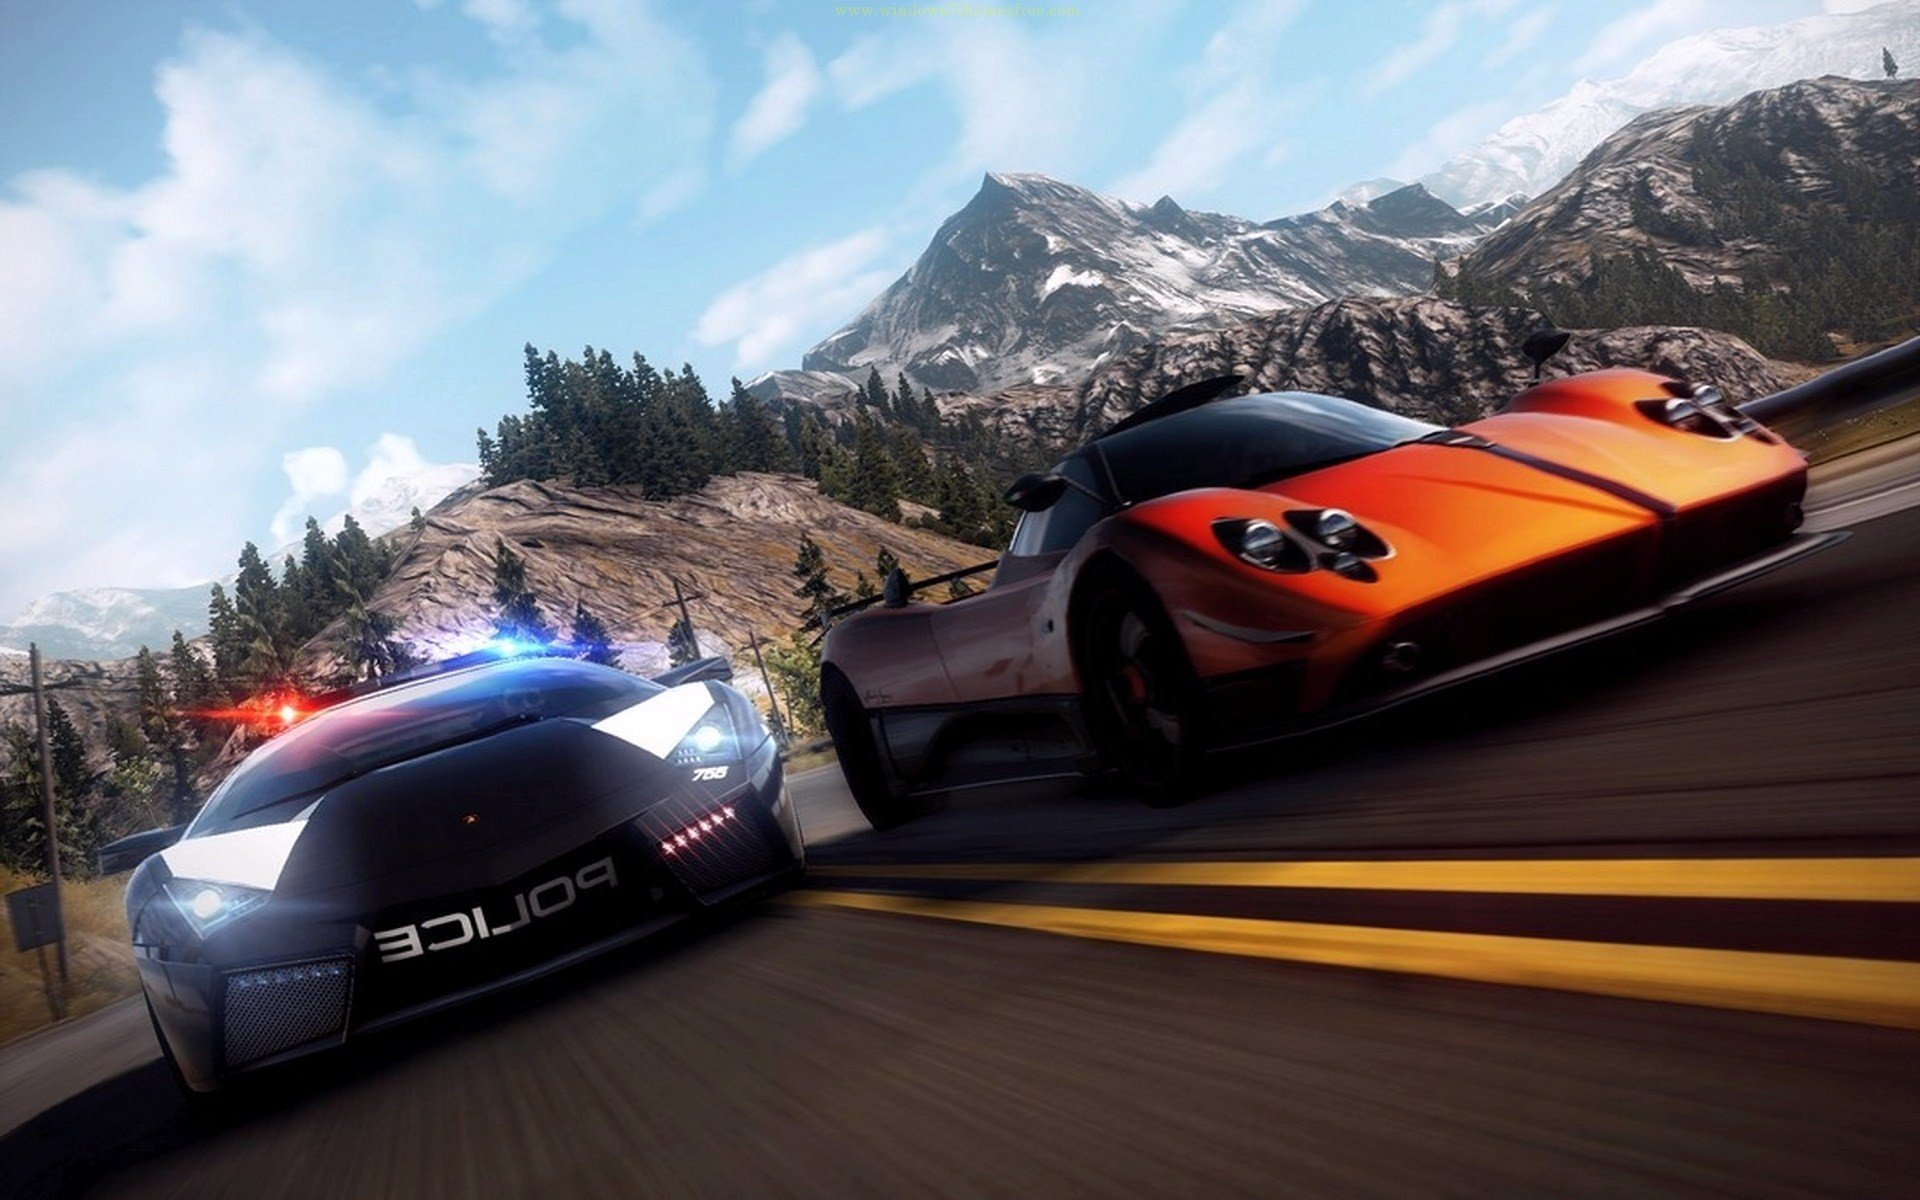 Video games mountains cars police Need for Speed roads ...